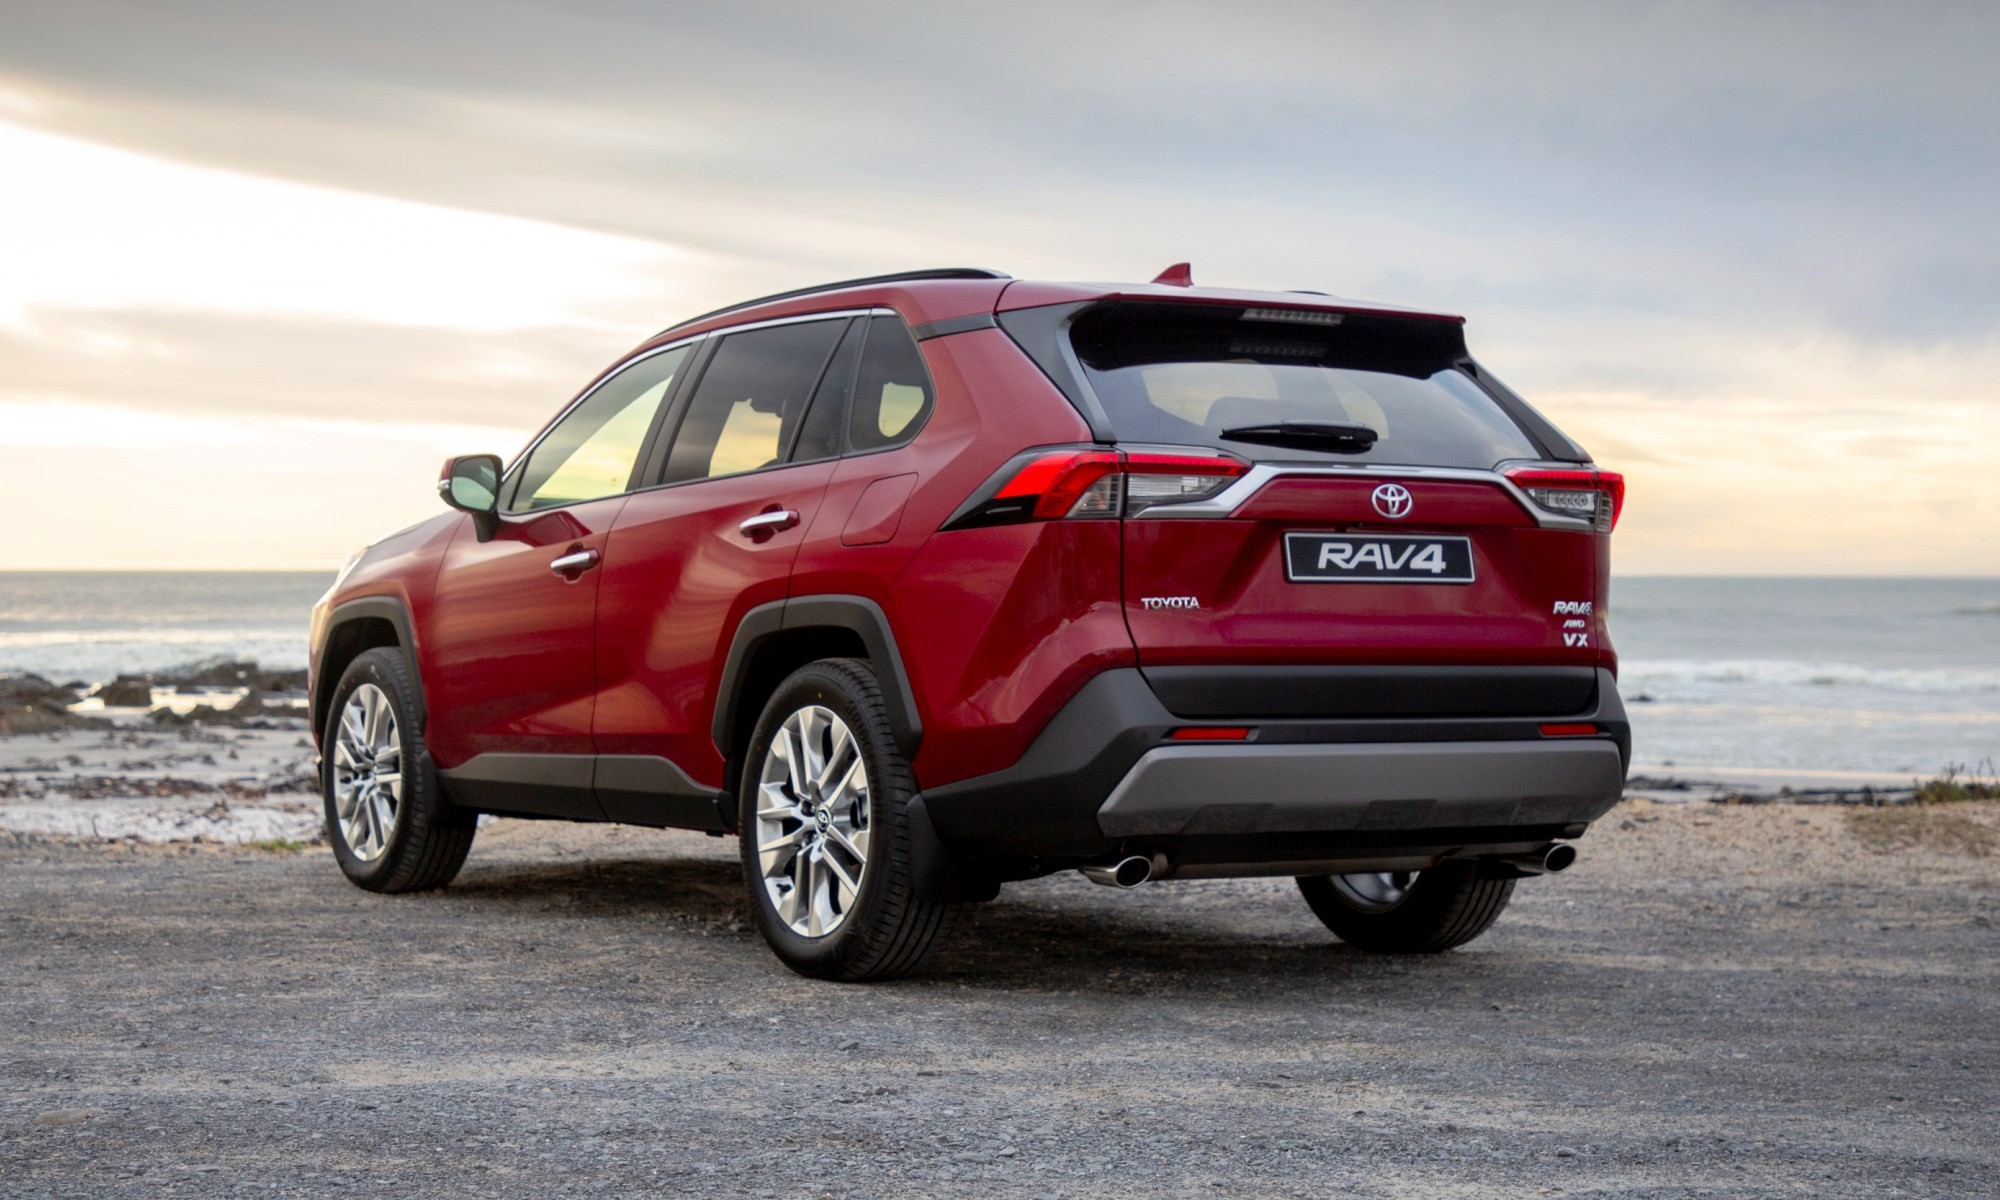 New Toyota RAV4 rear